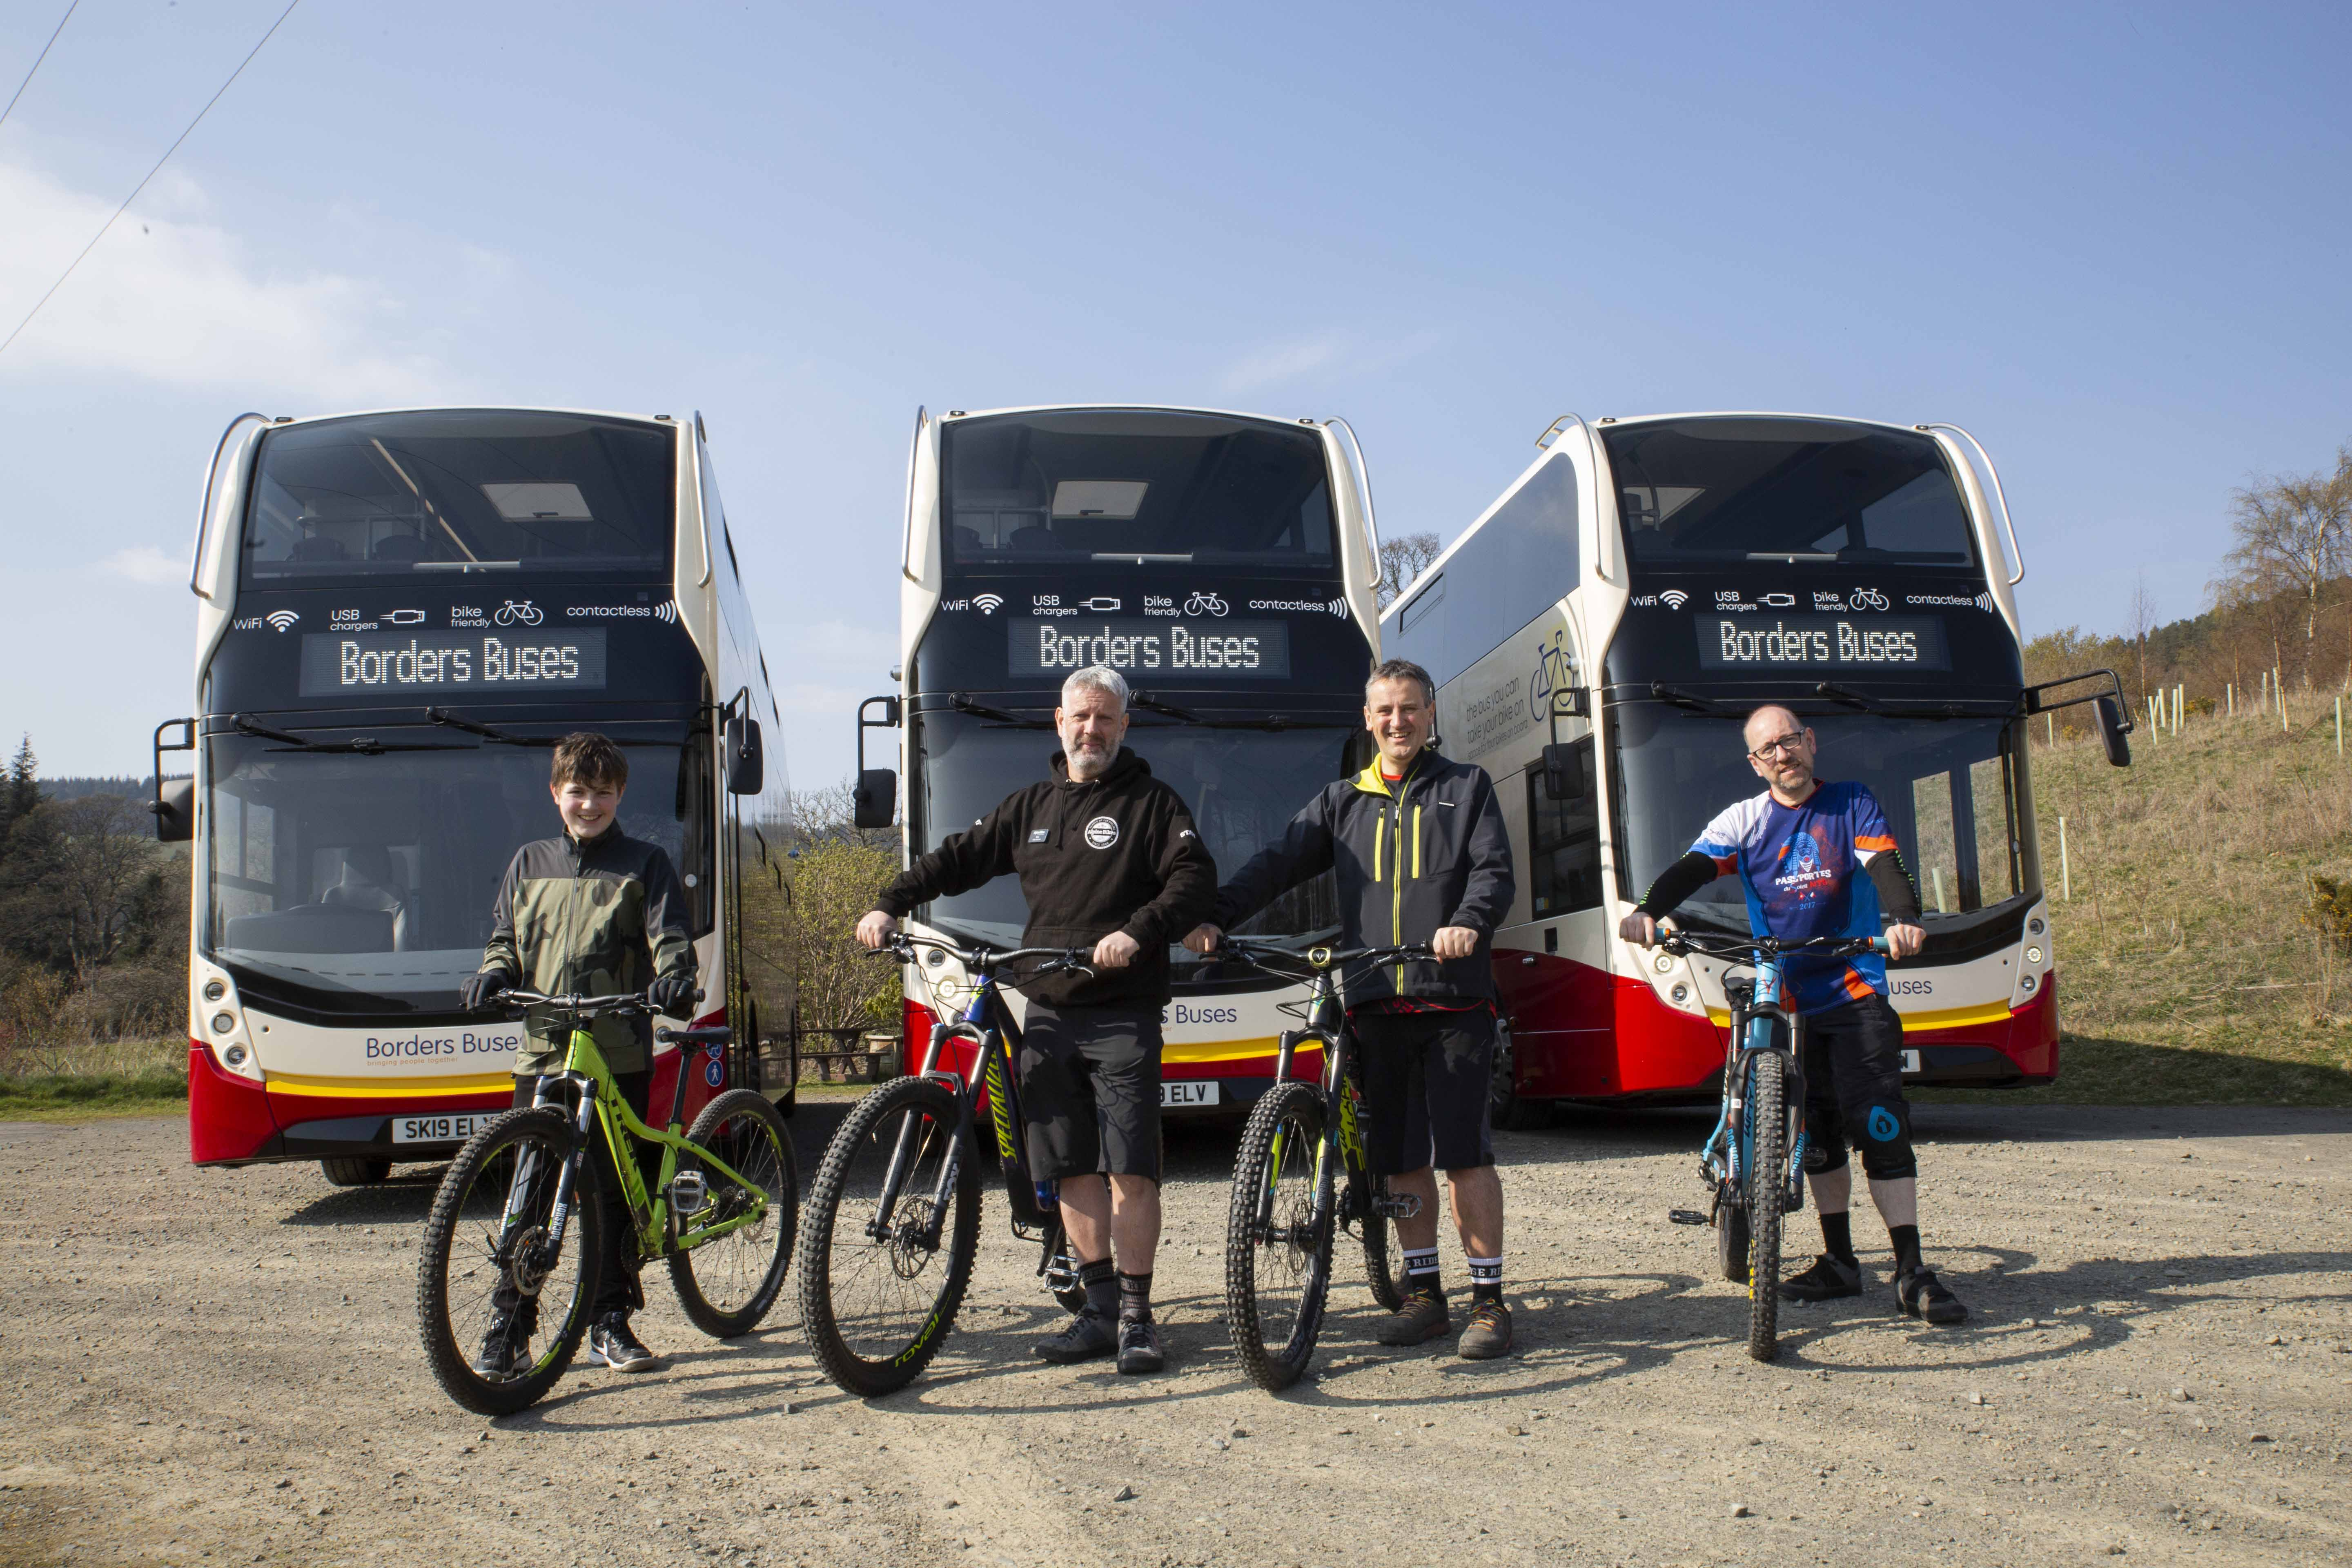 Four cyclists holding their bikes at Glentress forrest with three double decker buses in the background